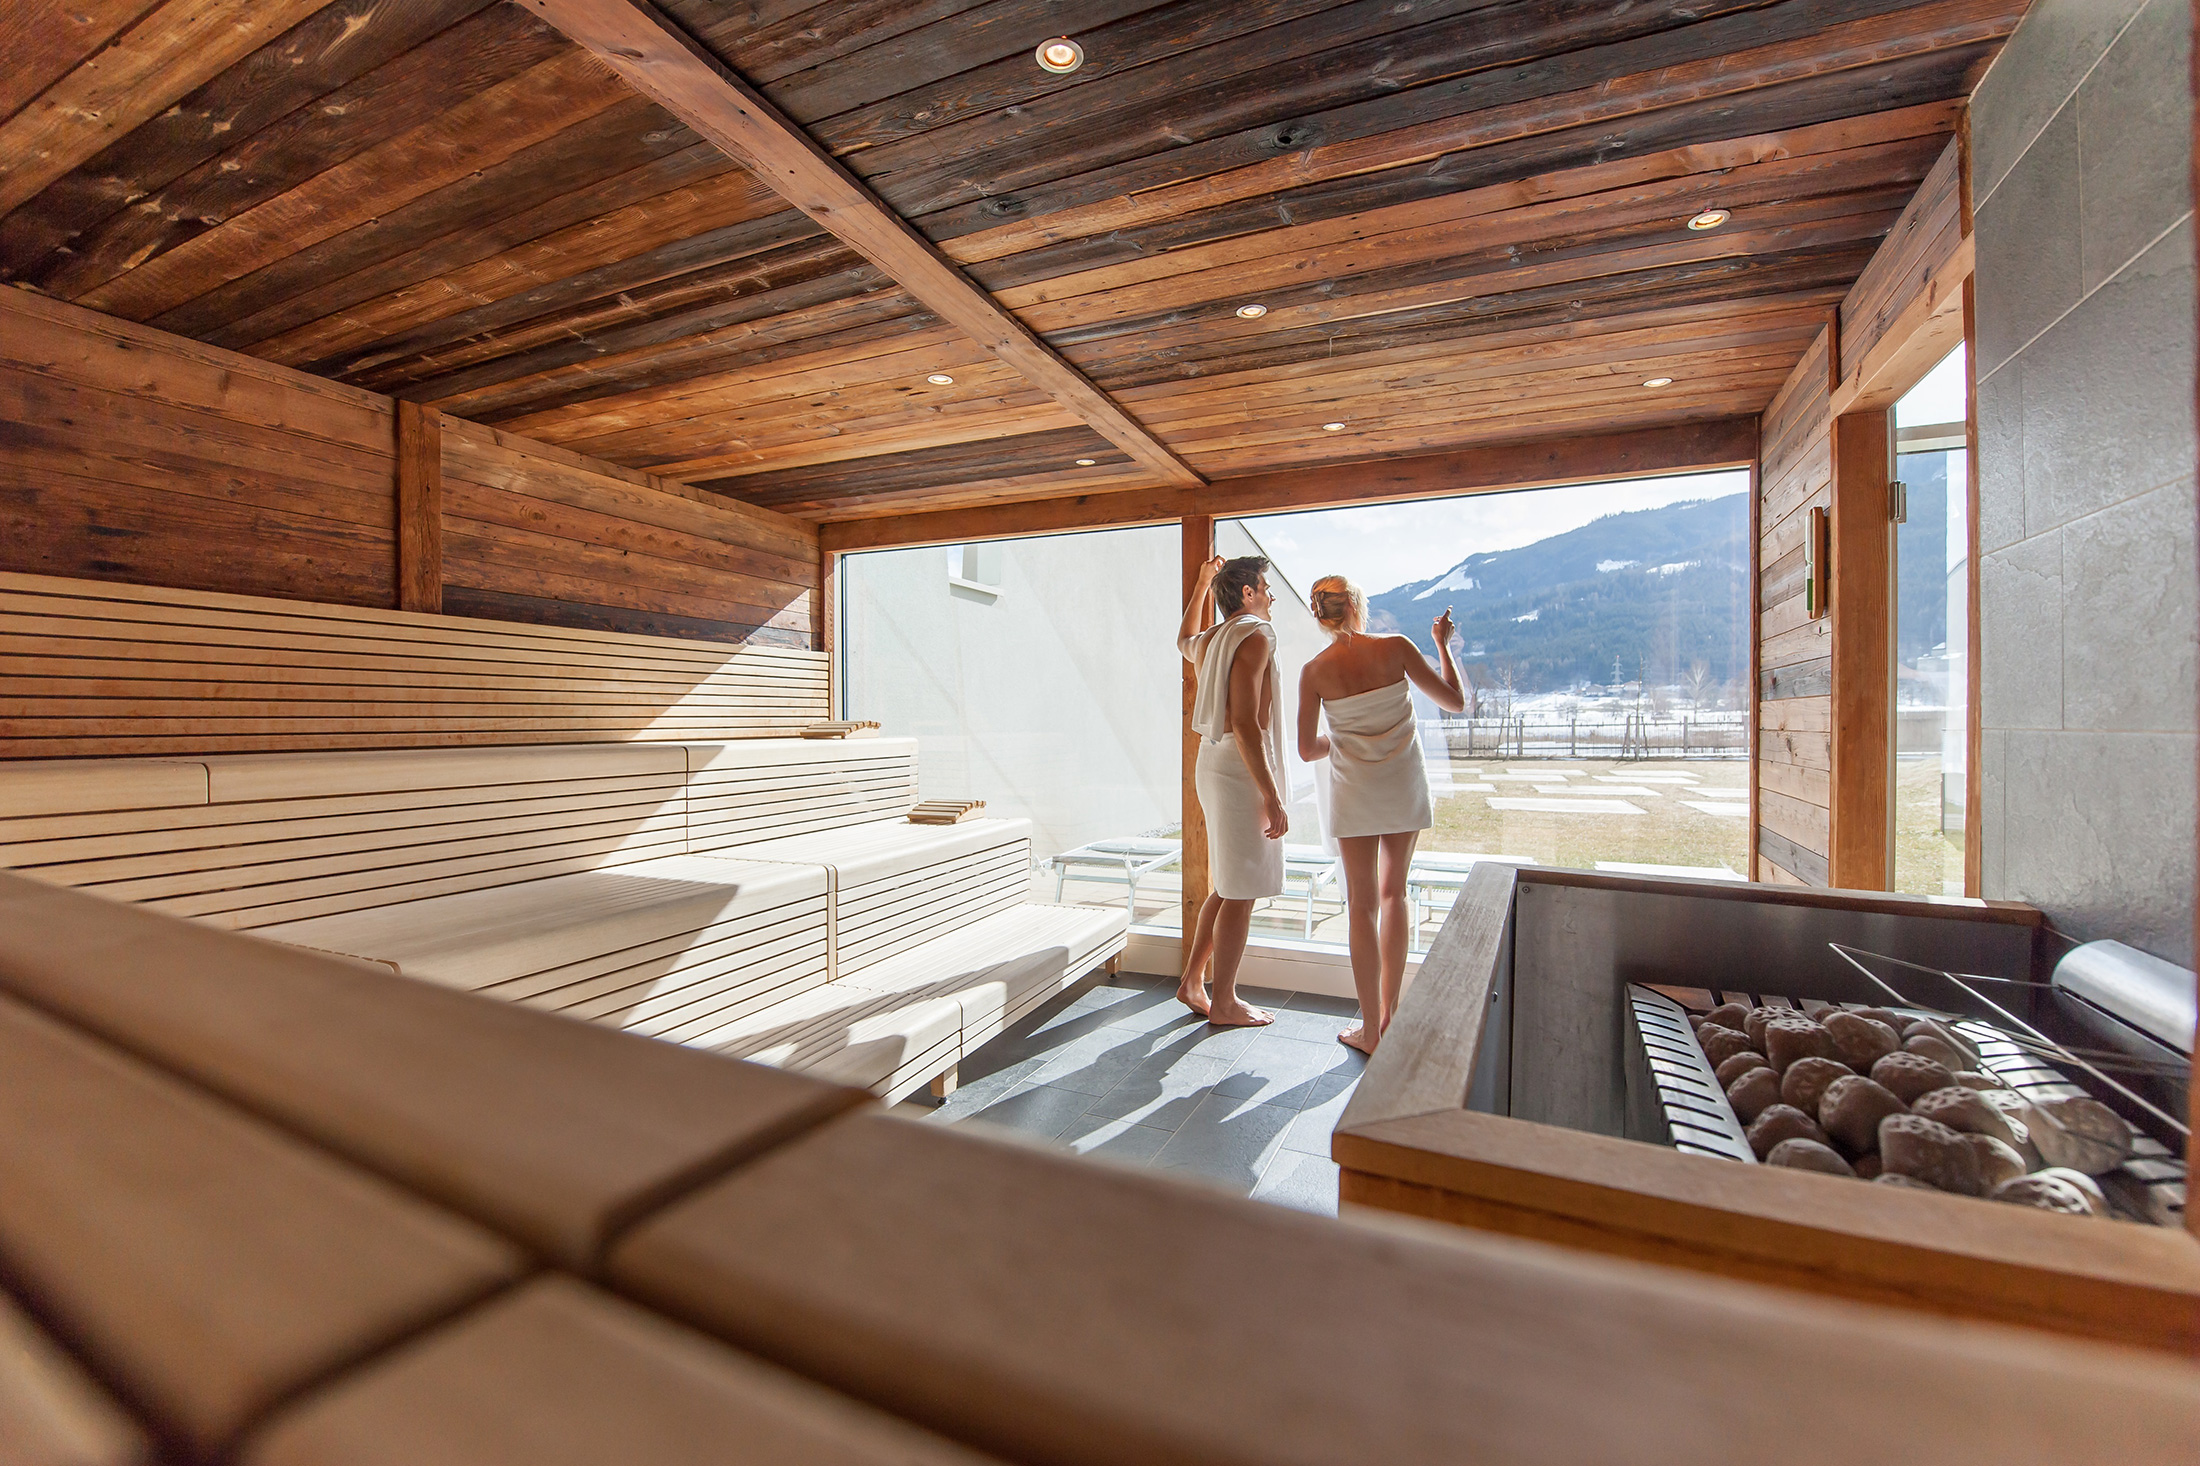 bilder videos spa saunawelt tauern spa kaprun. Black Bedroom Furniture Sets. Home Design Ideas